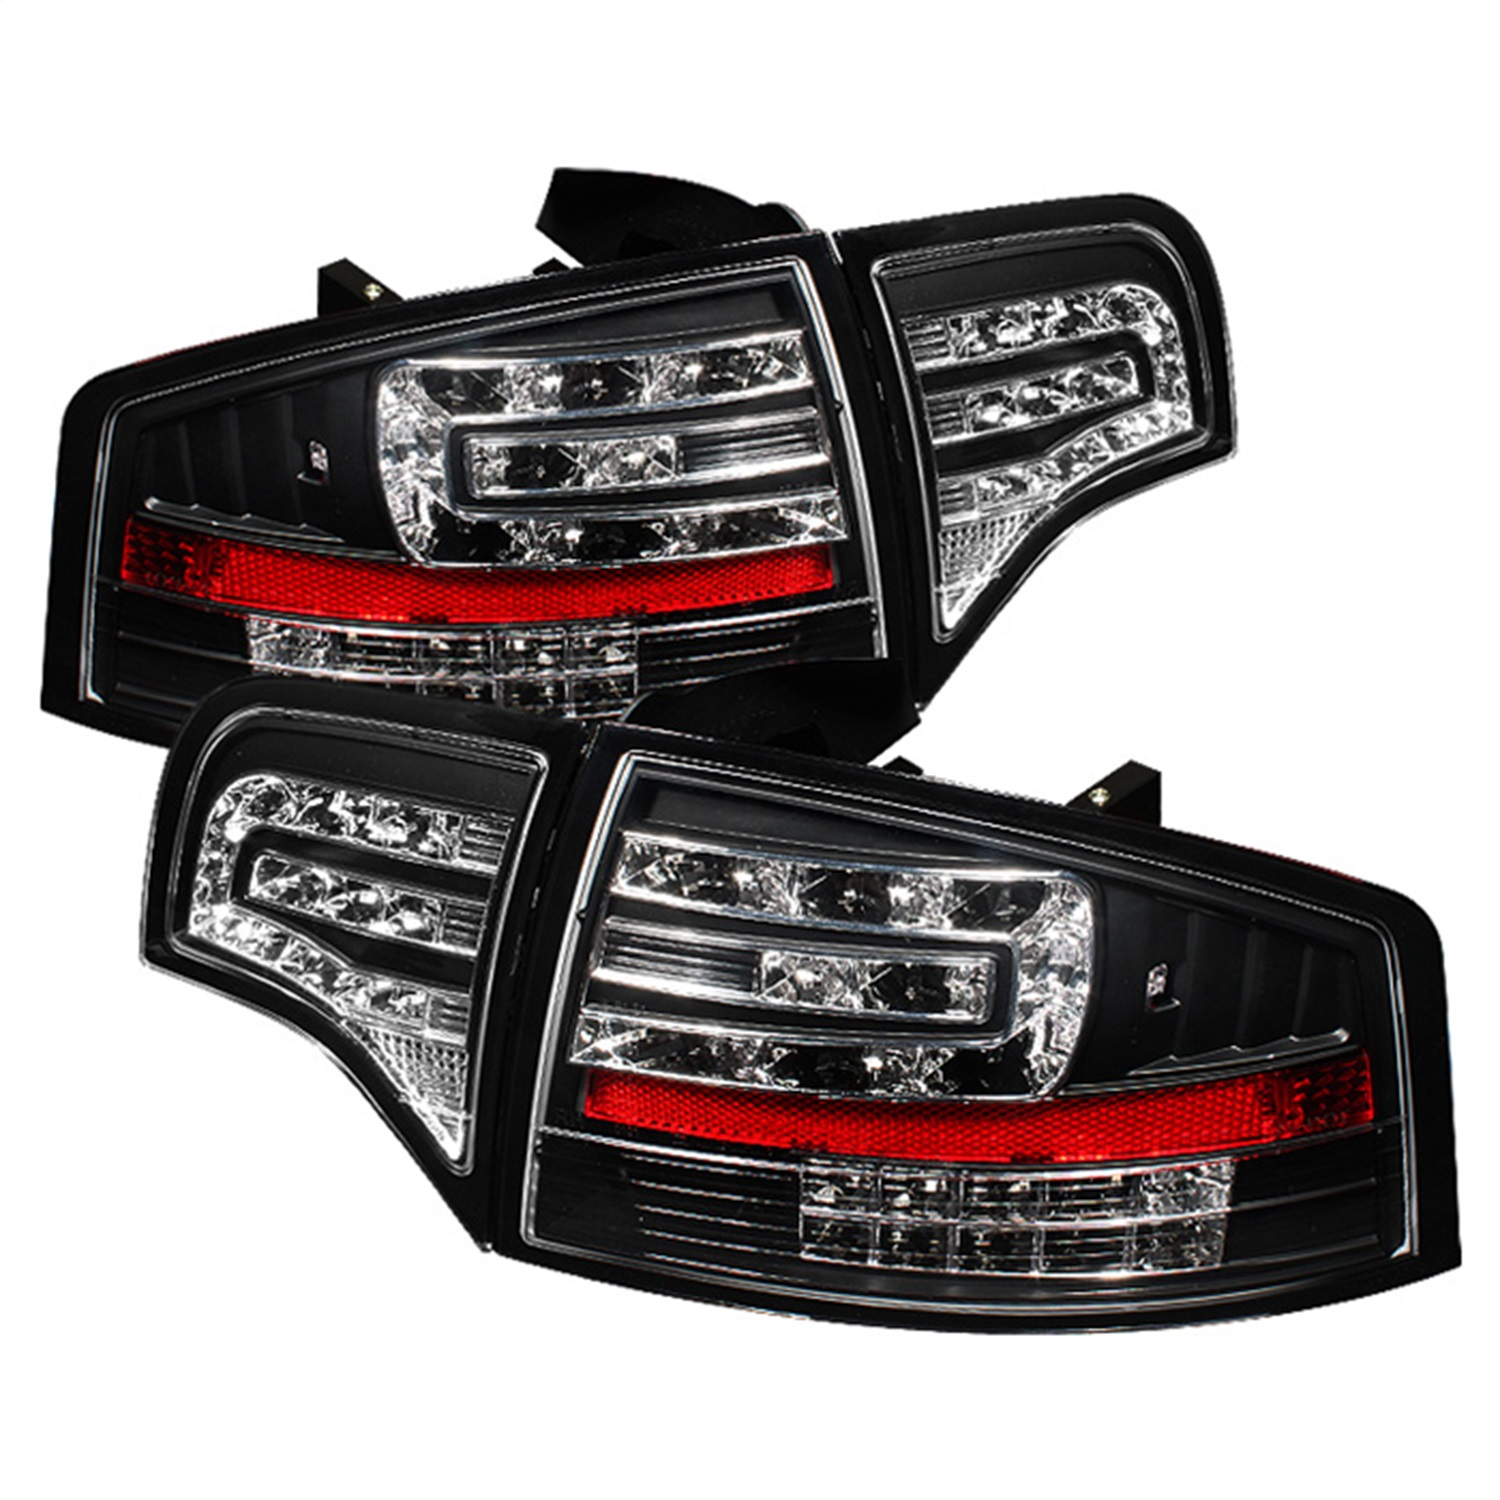 Spyder Auto 5029287 LED Tail Lights Fits 06-08 A4 A4 Quattro